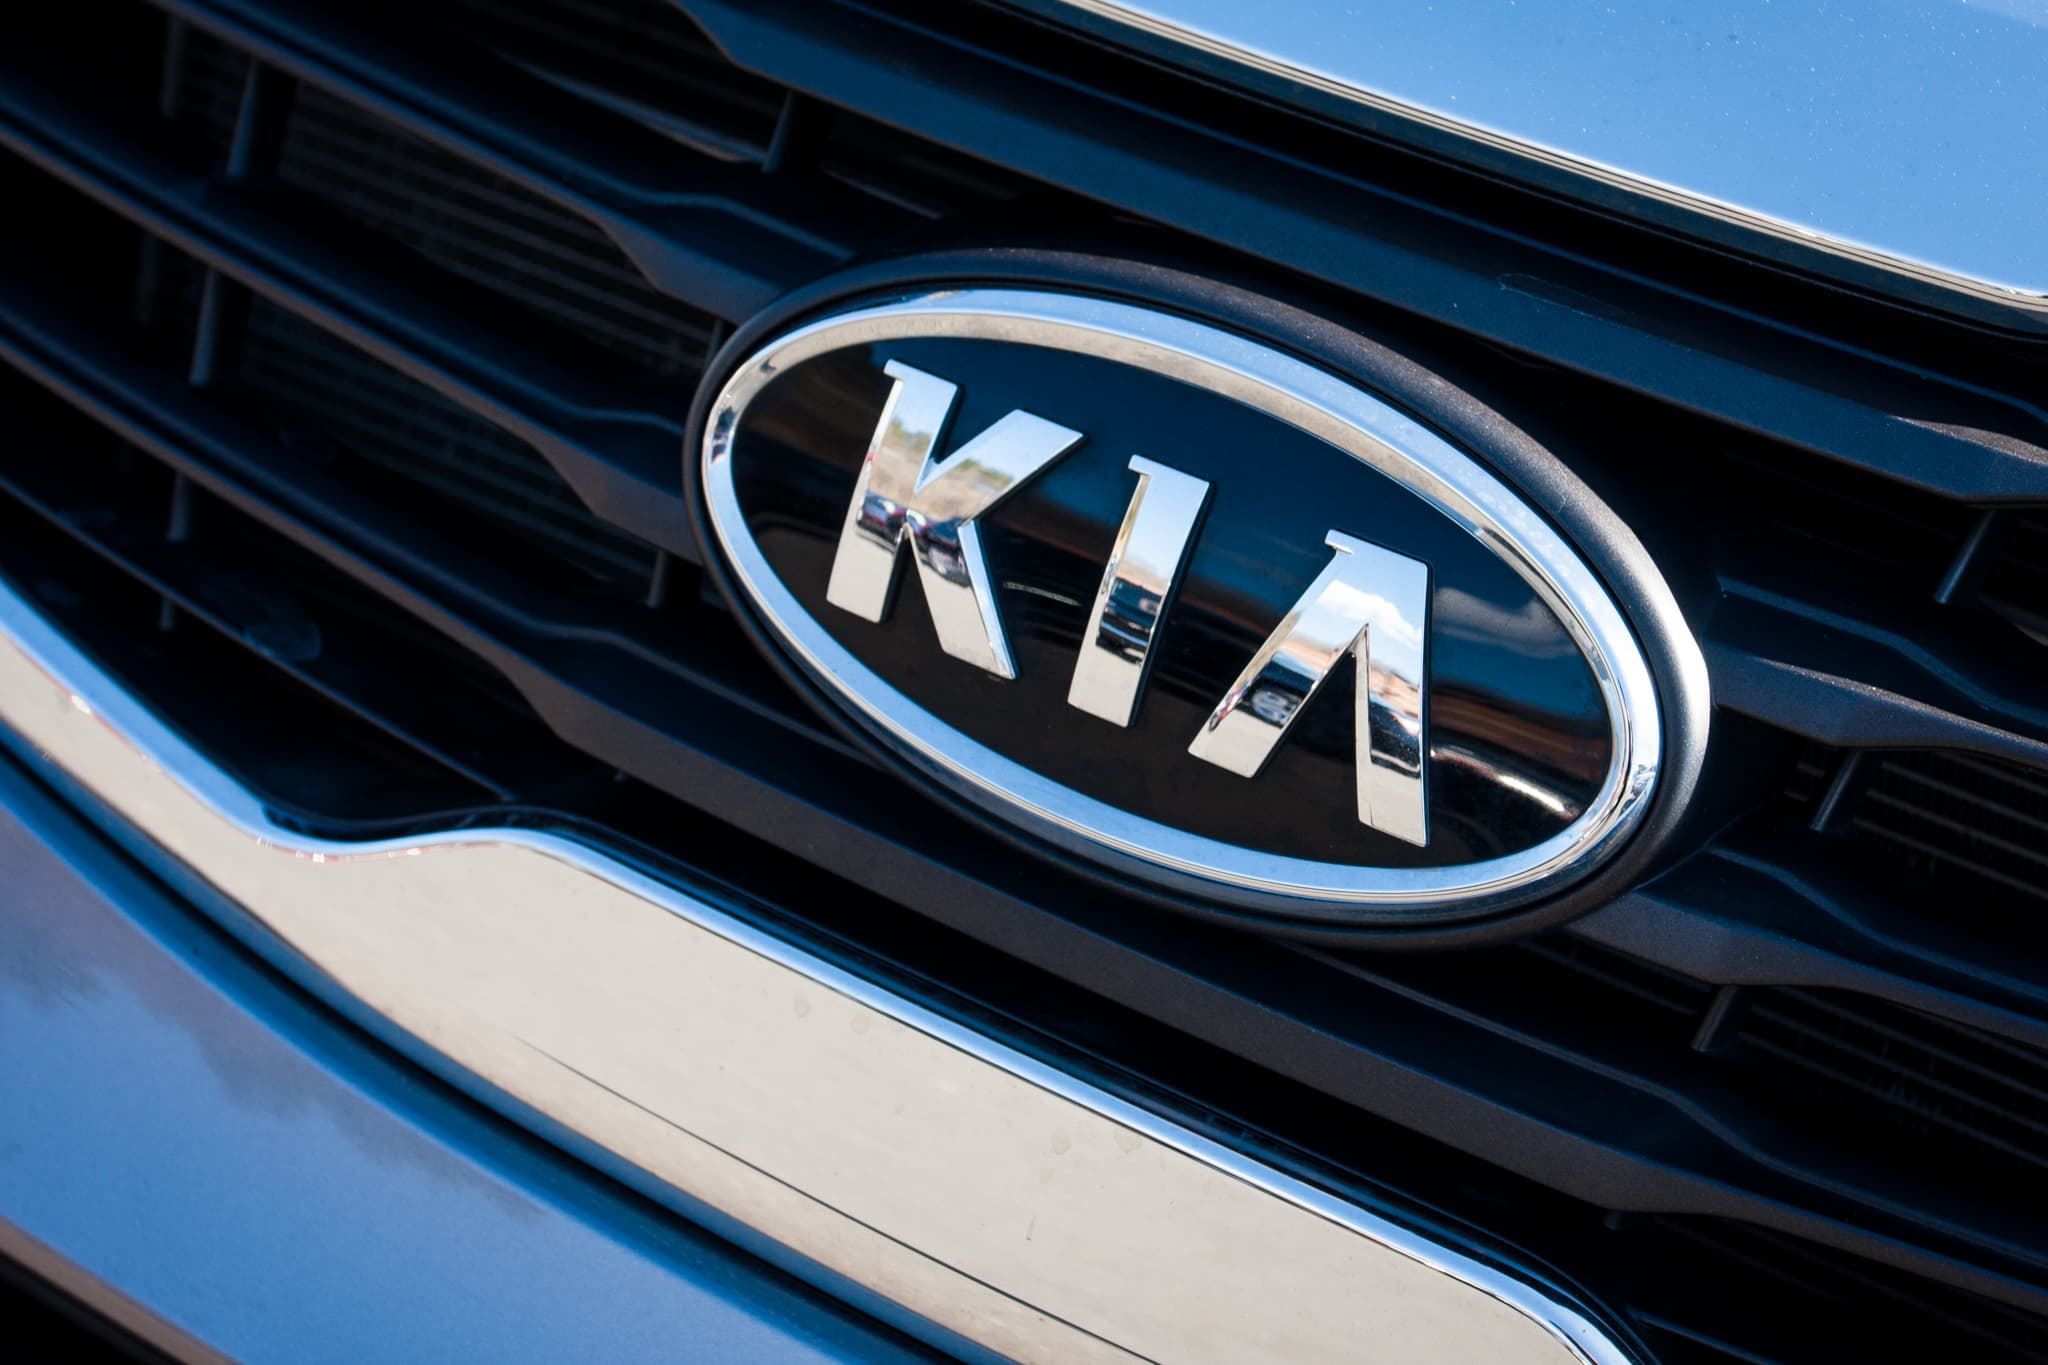 Kia recalls 295,000 U.S. vehicles due to mechanical fire accident